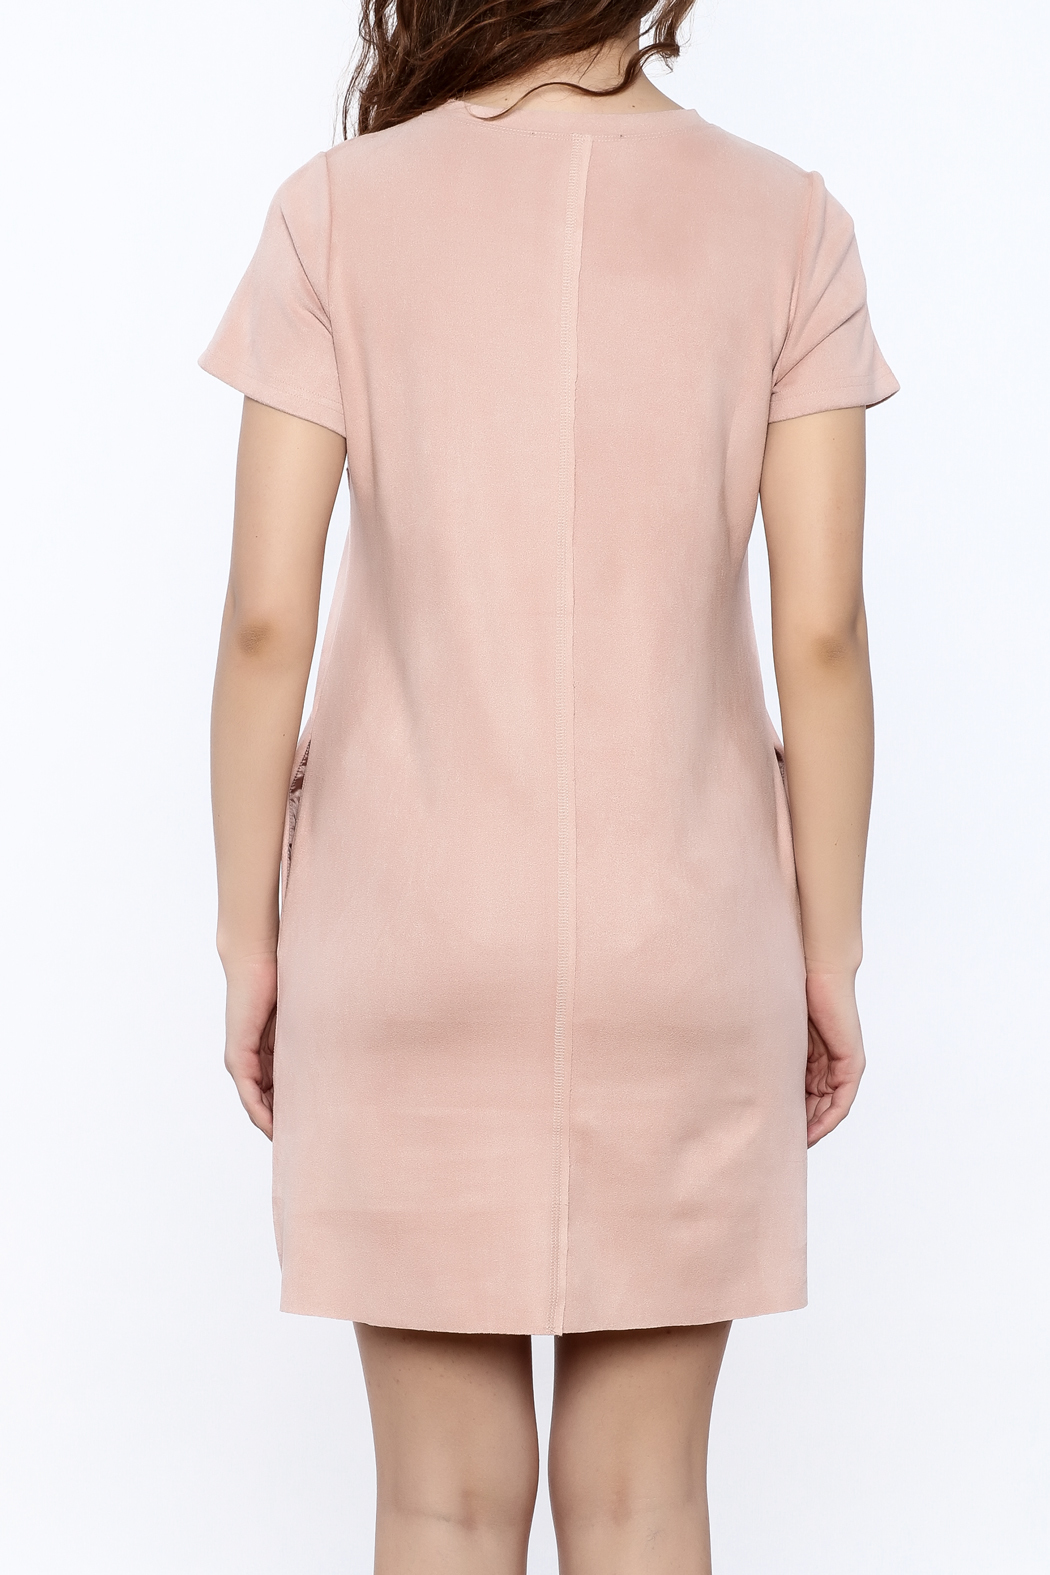 JOH Faux Suede Shift Dress - Back Cropped Image